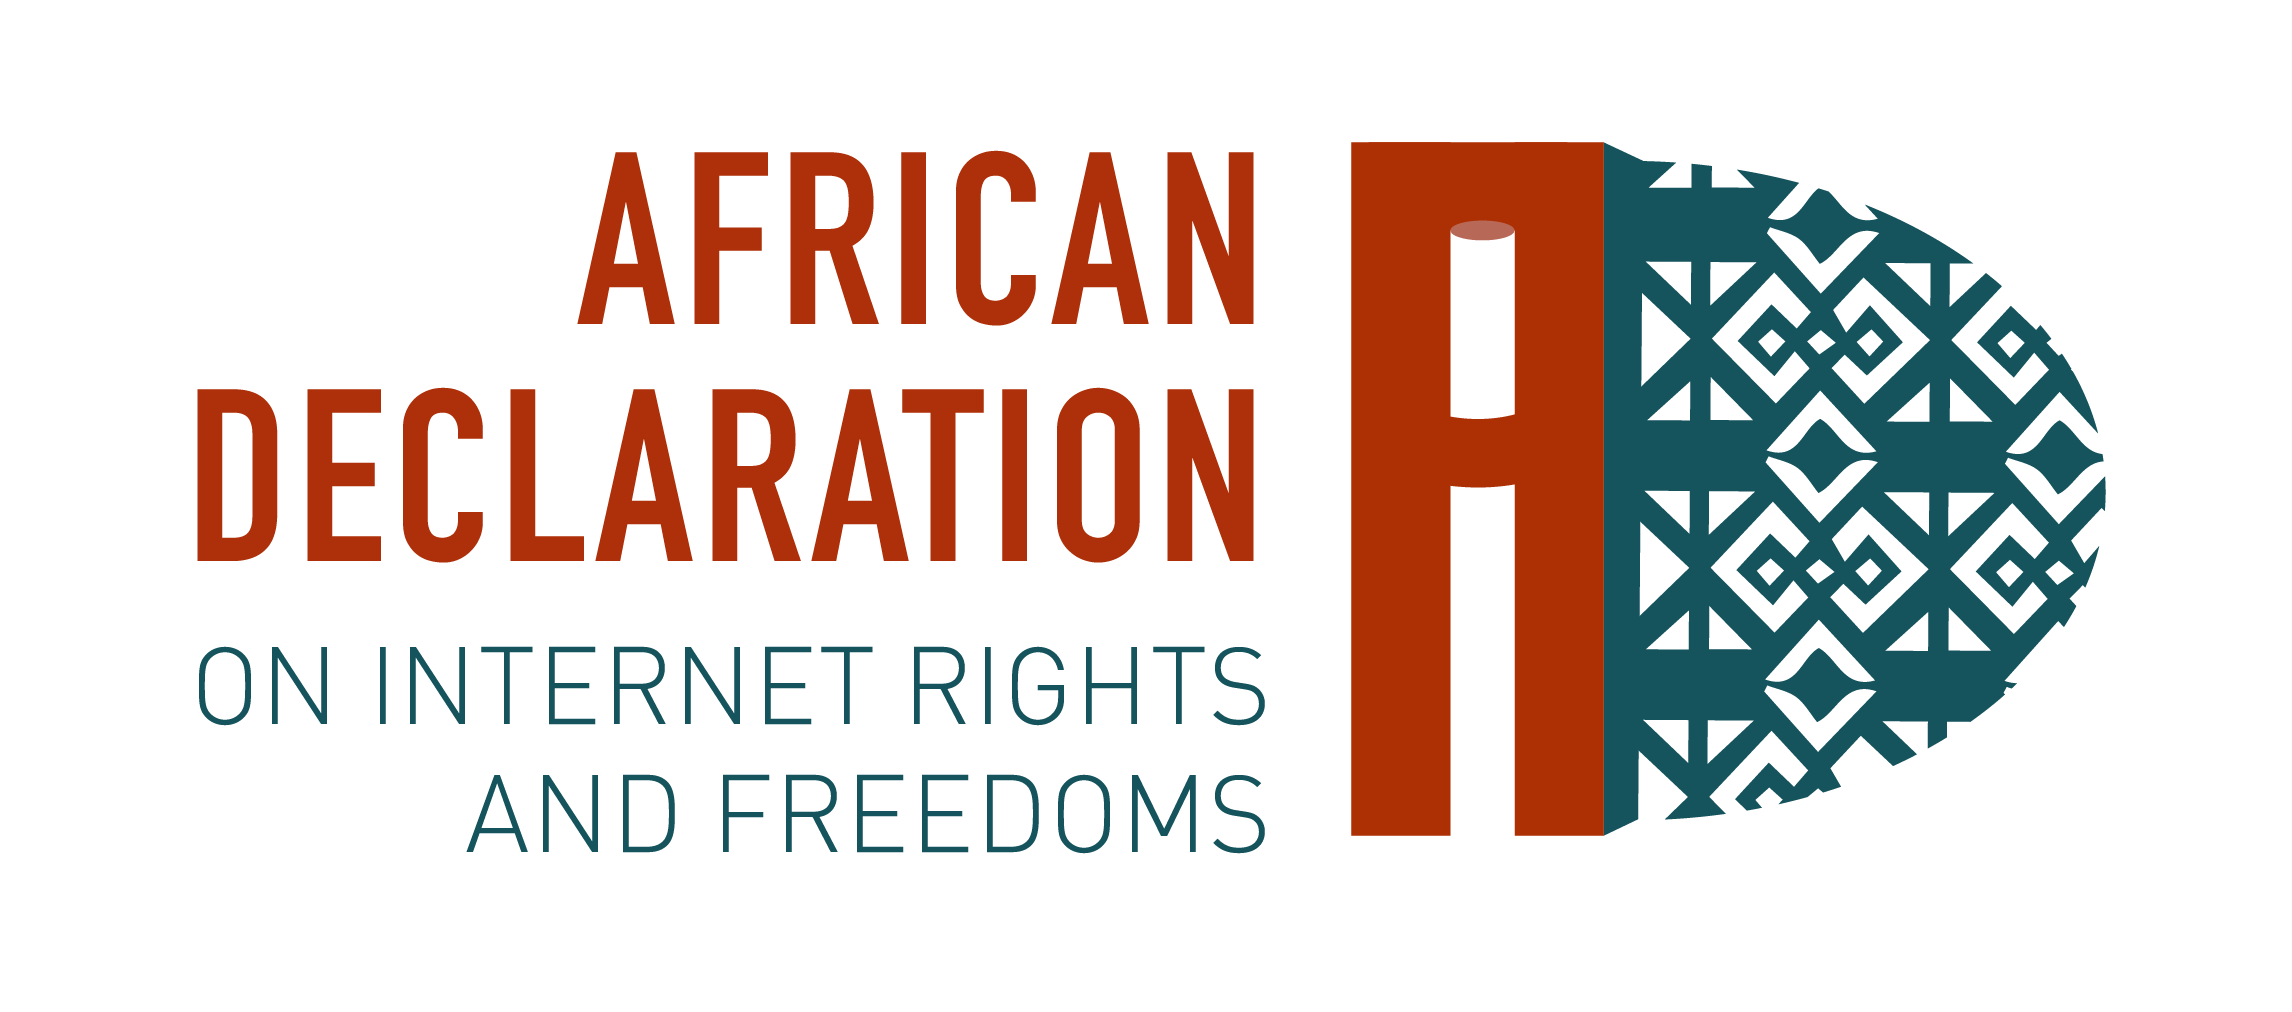 African Declaration on Internet Rights